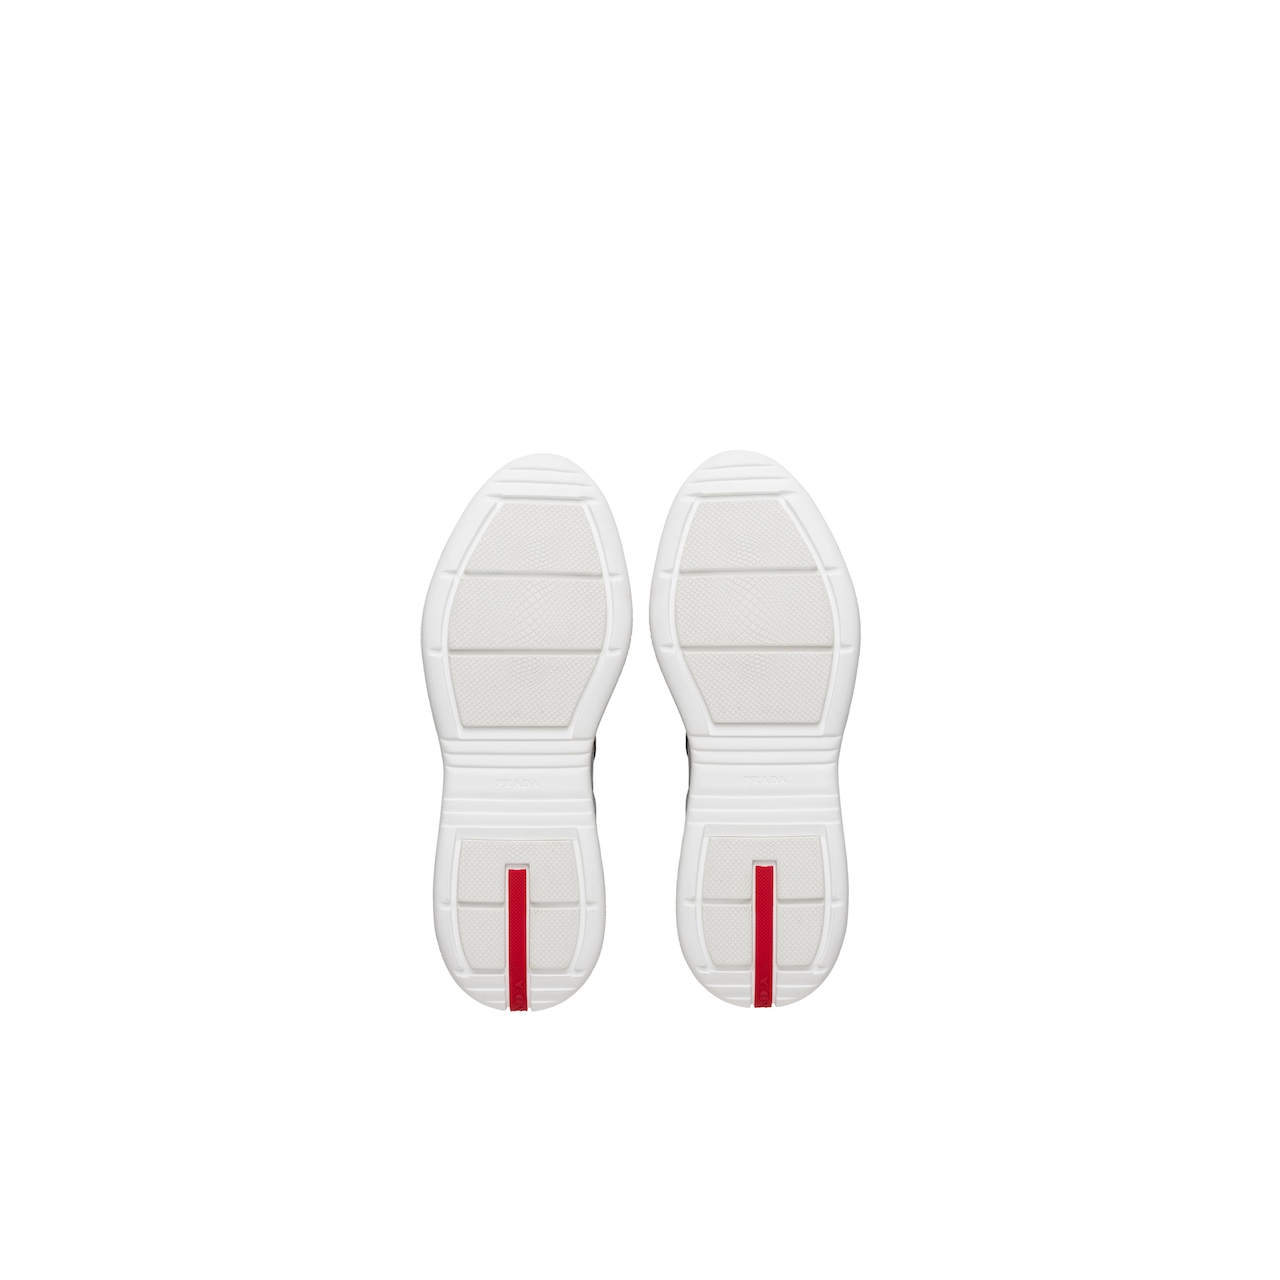 Prada America's Cup patent leather and nylon sneakers 6